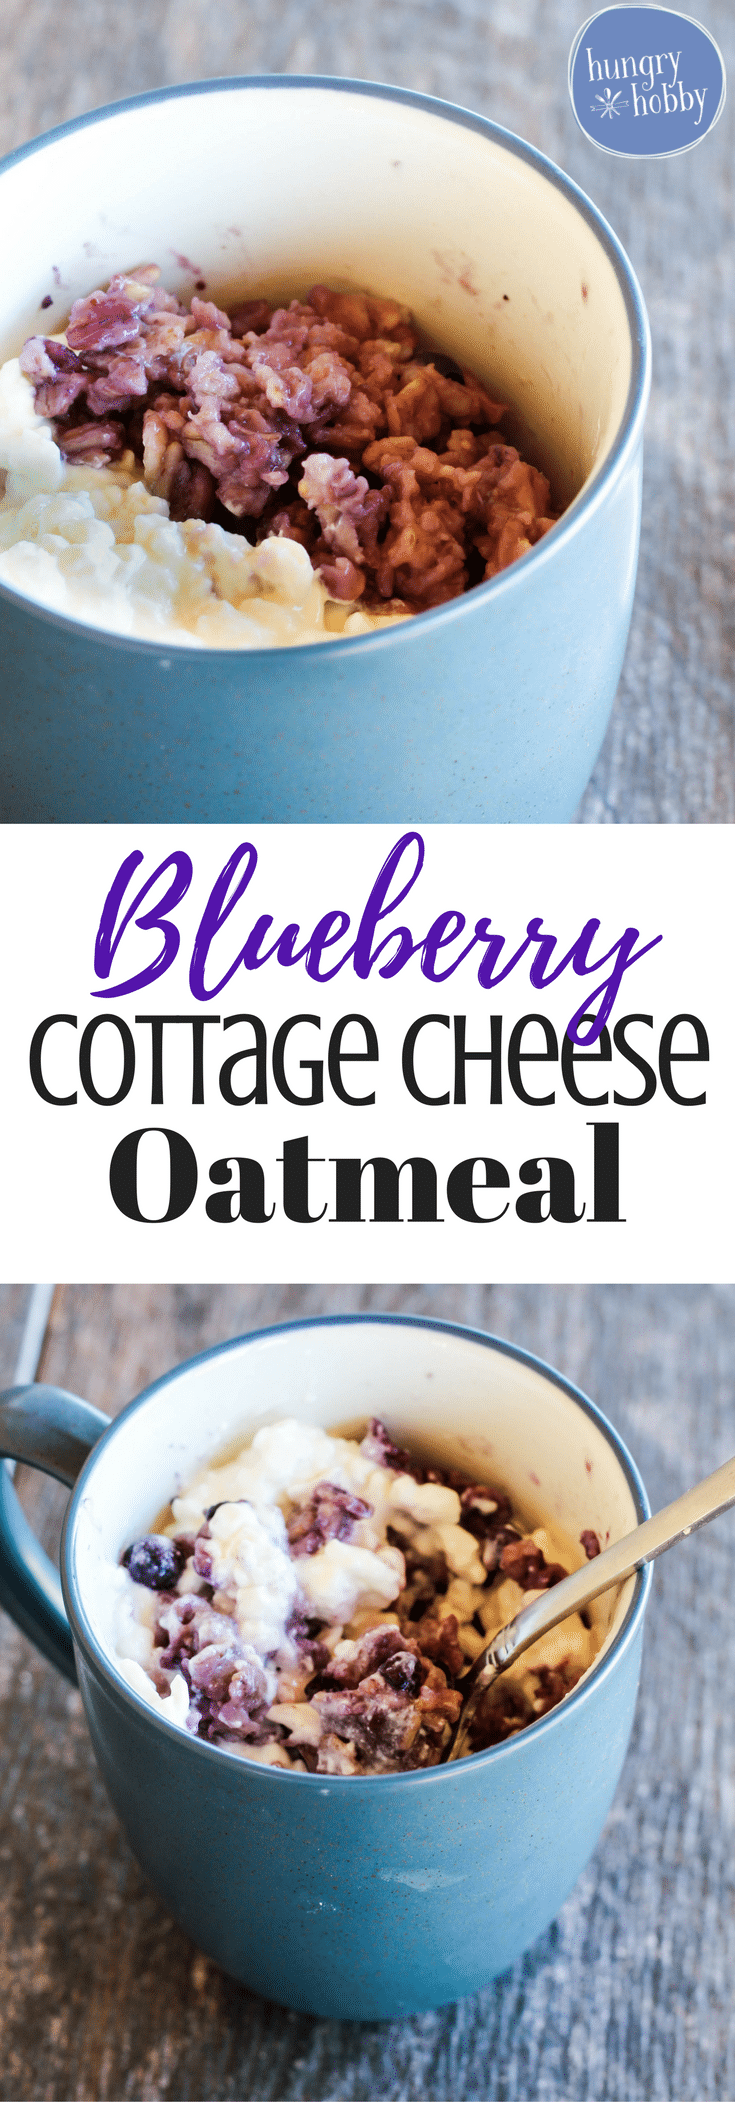 Double the size of your oatmeal bowl by adding protein rich creamy cottage cheese & sweet wild blueberries! A quick and healthy breakfast!